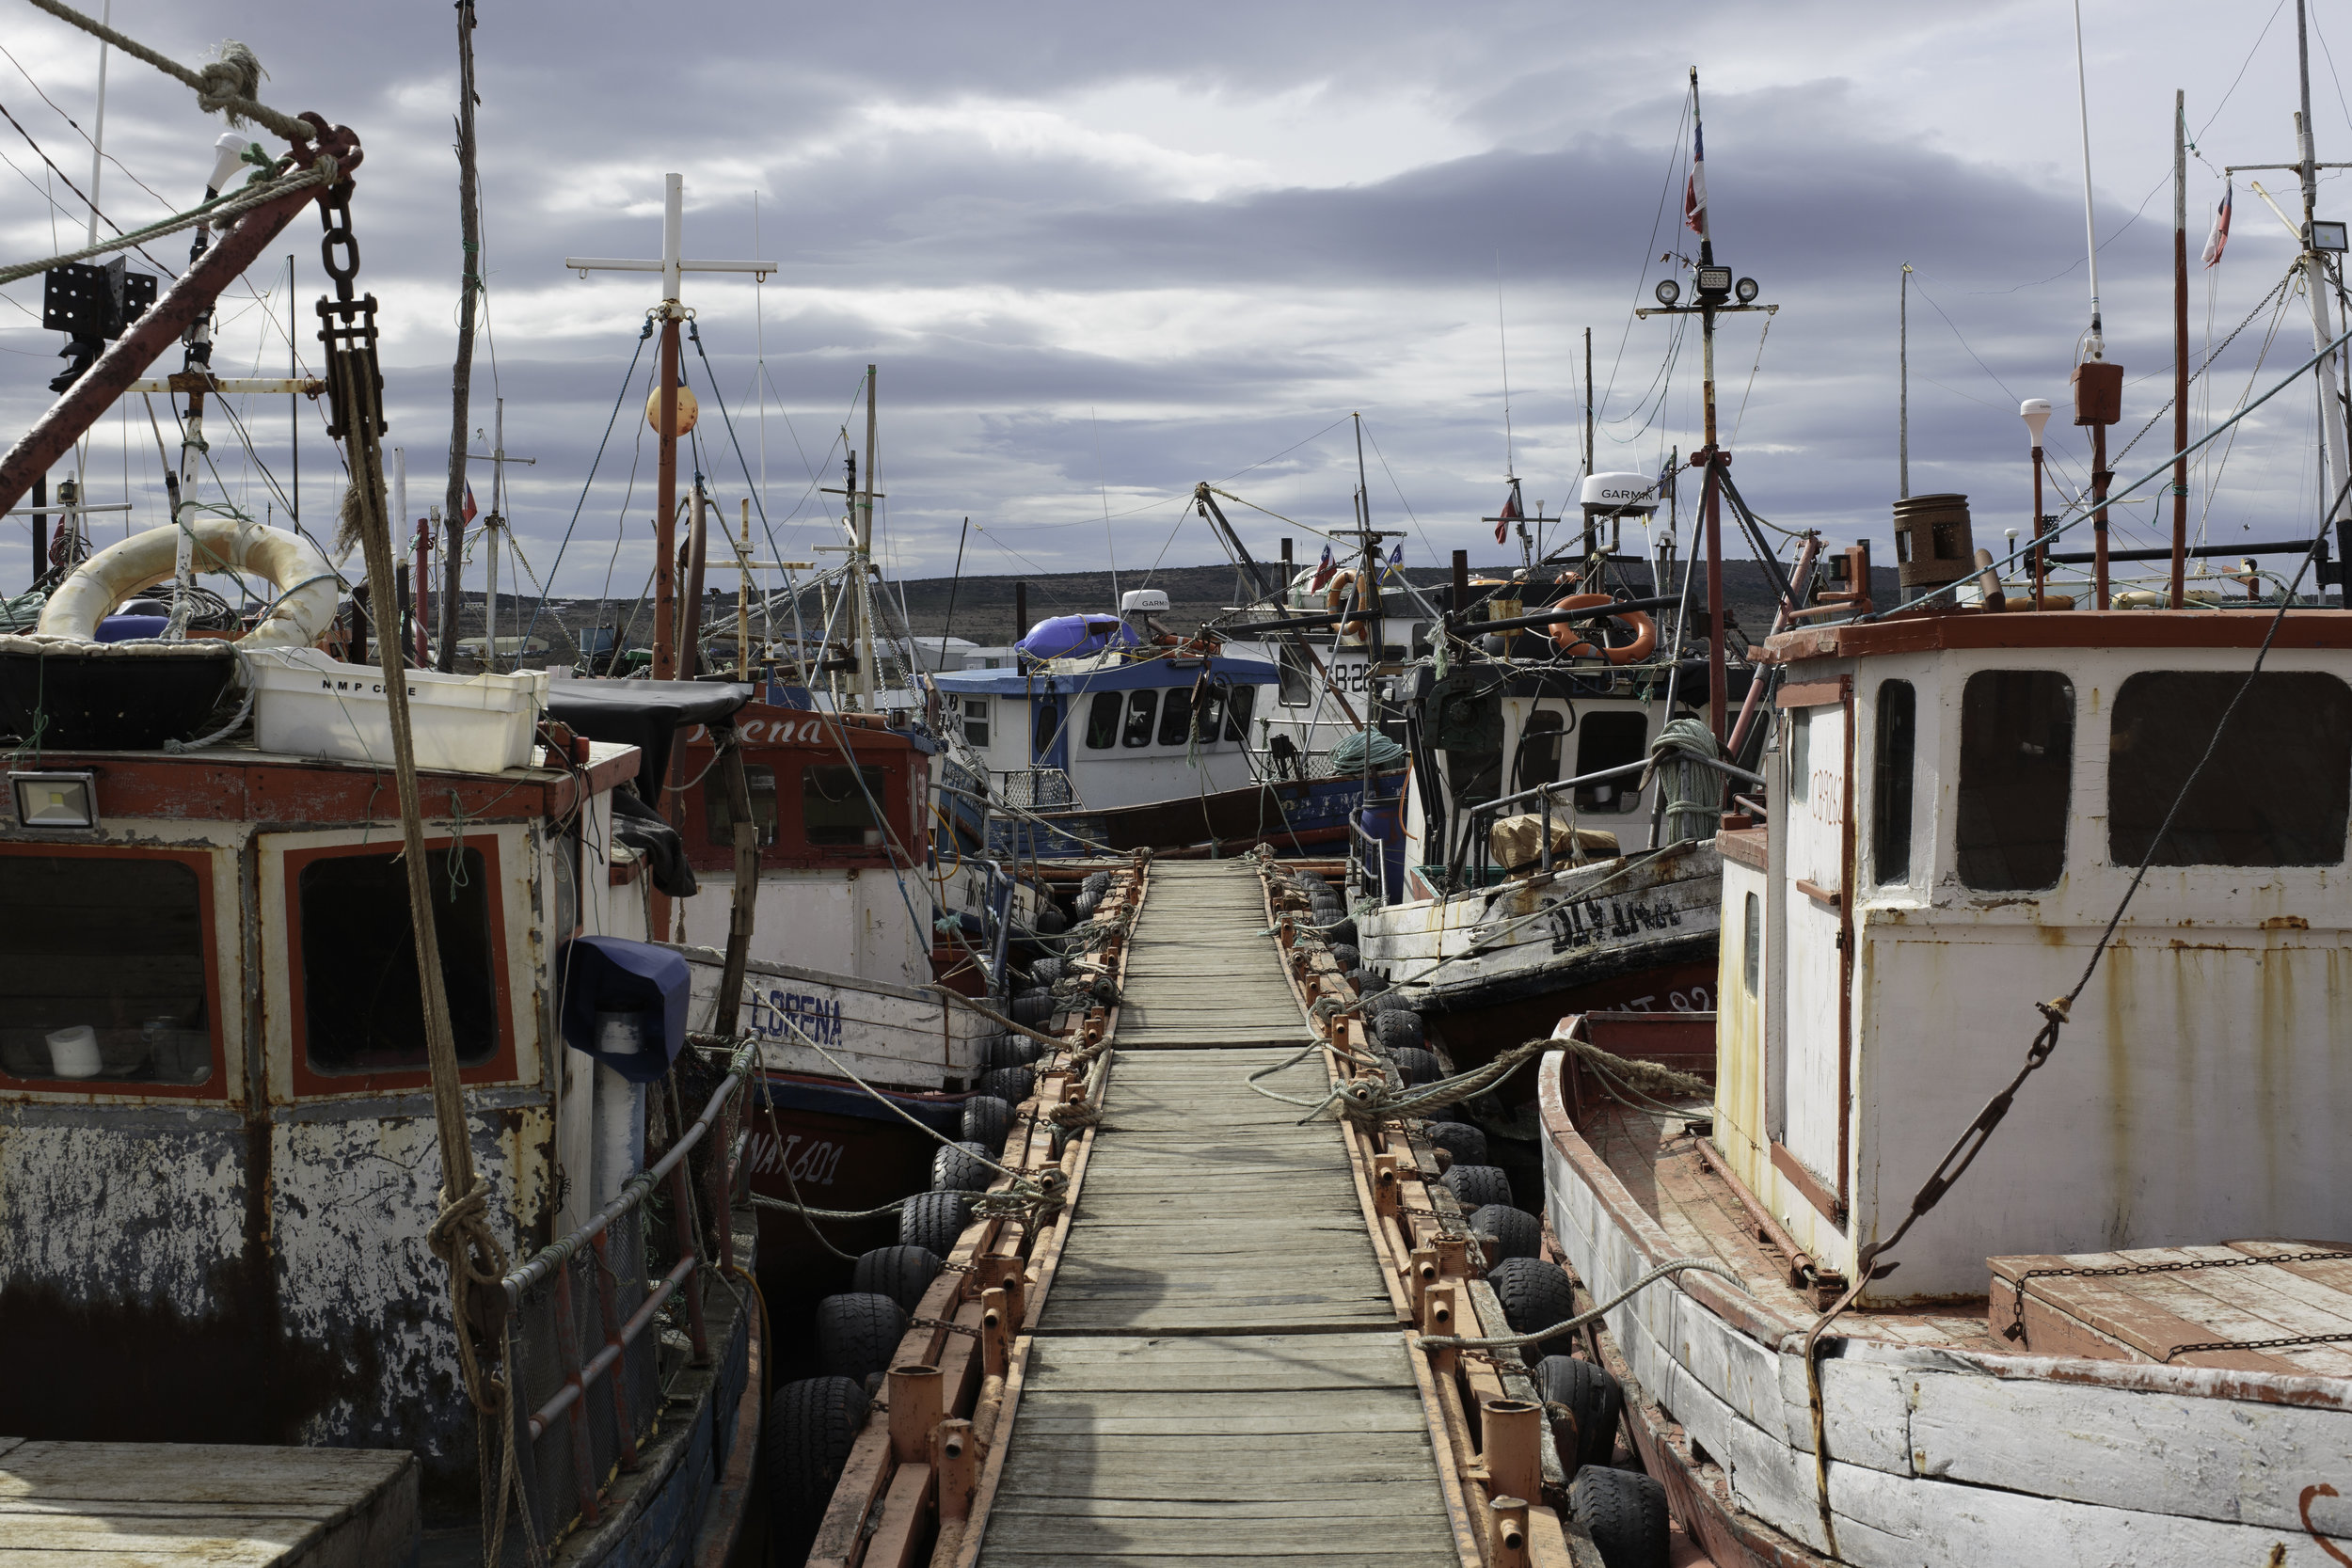 Fishing boats in Puerto Natales.